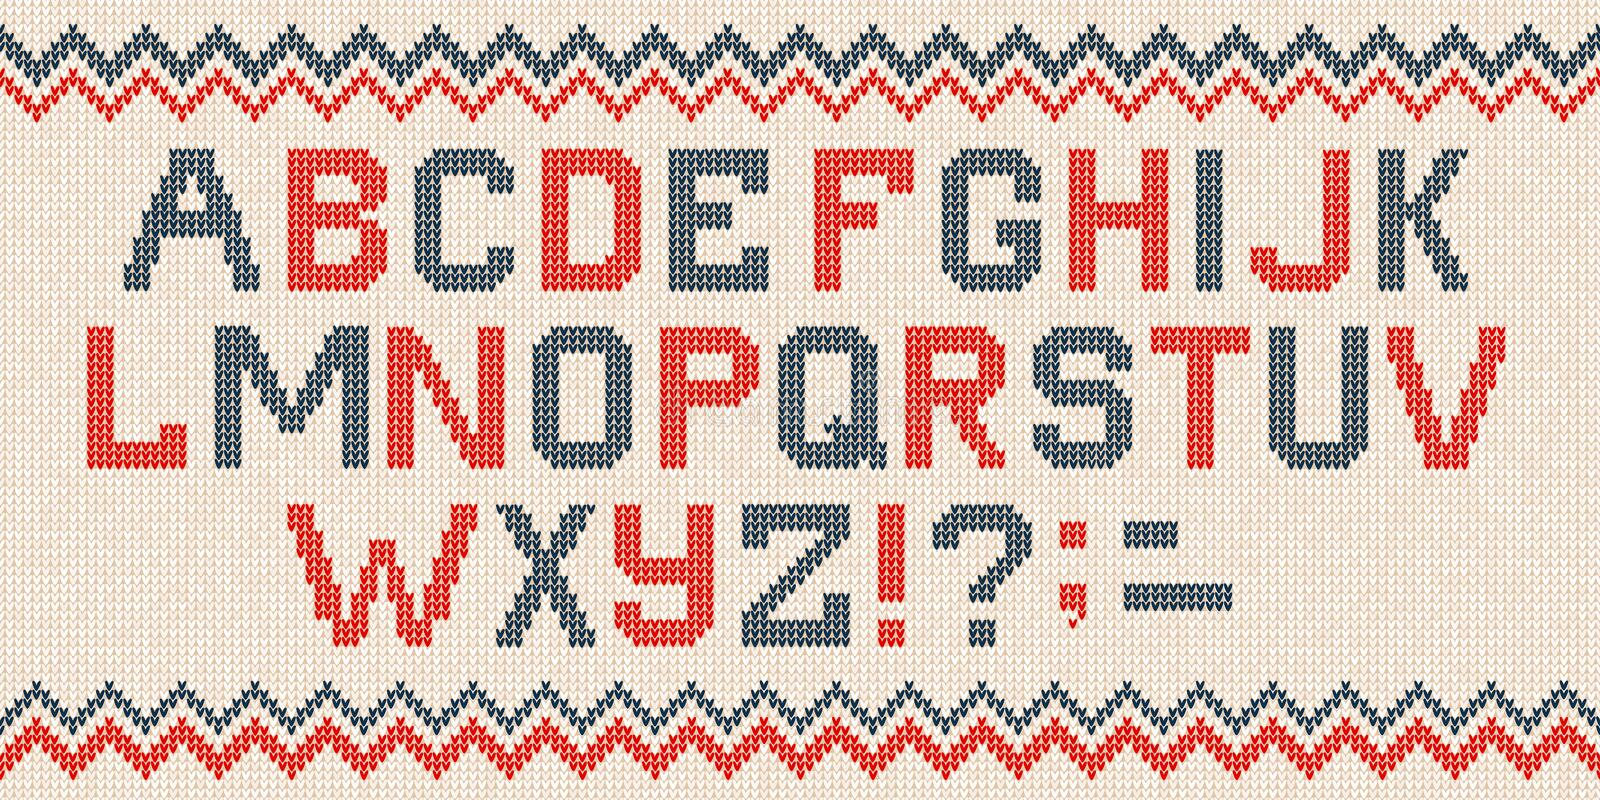 Contemporary Knitted Letters Pattern Images - Easy Scarf Knitting ...